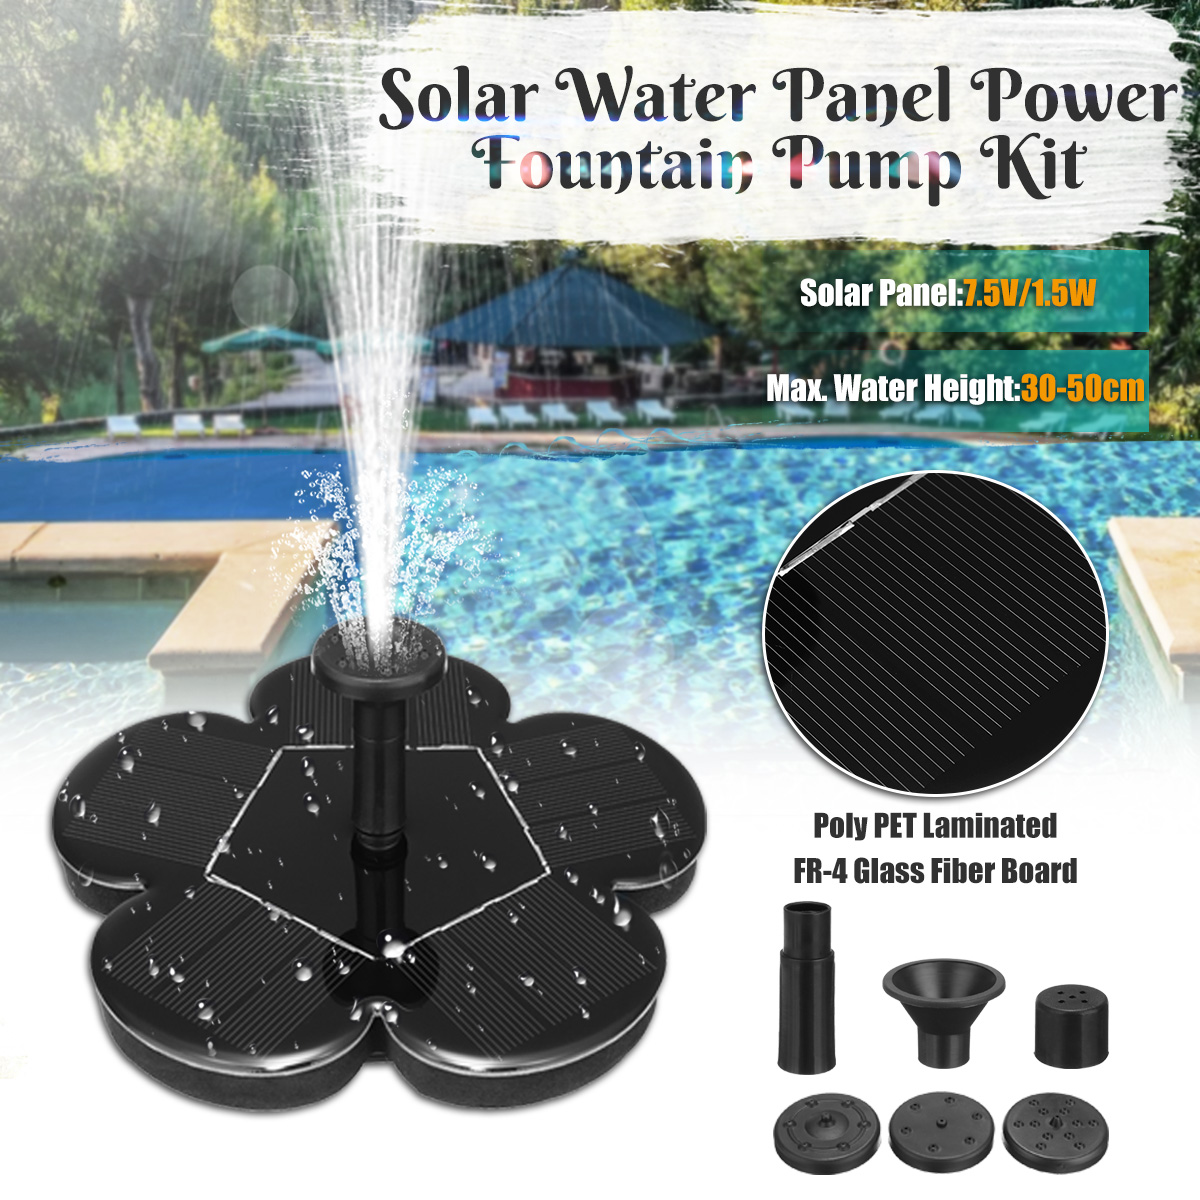 Submersible Pumps Brushless Solar Water Pump 7.5V 1.5W Mono Solar Panel Outdoor Mini Solar Water Fountain Pump For Garden dc brushless solar water pump 70m solar water pump for fountain garden pond 24v solar mini water pump solar cell water pump